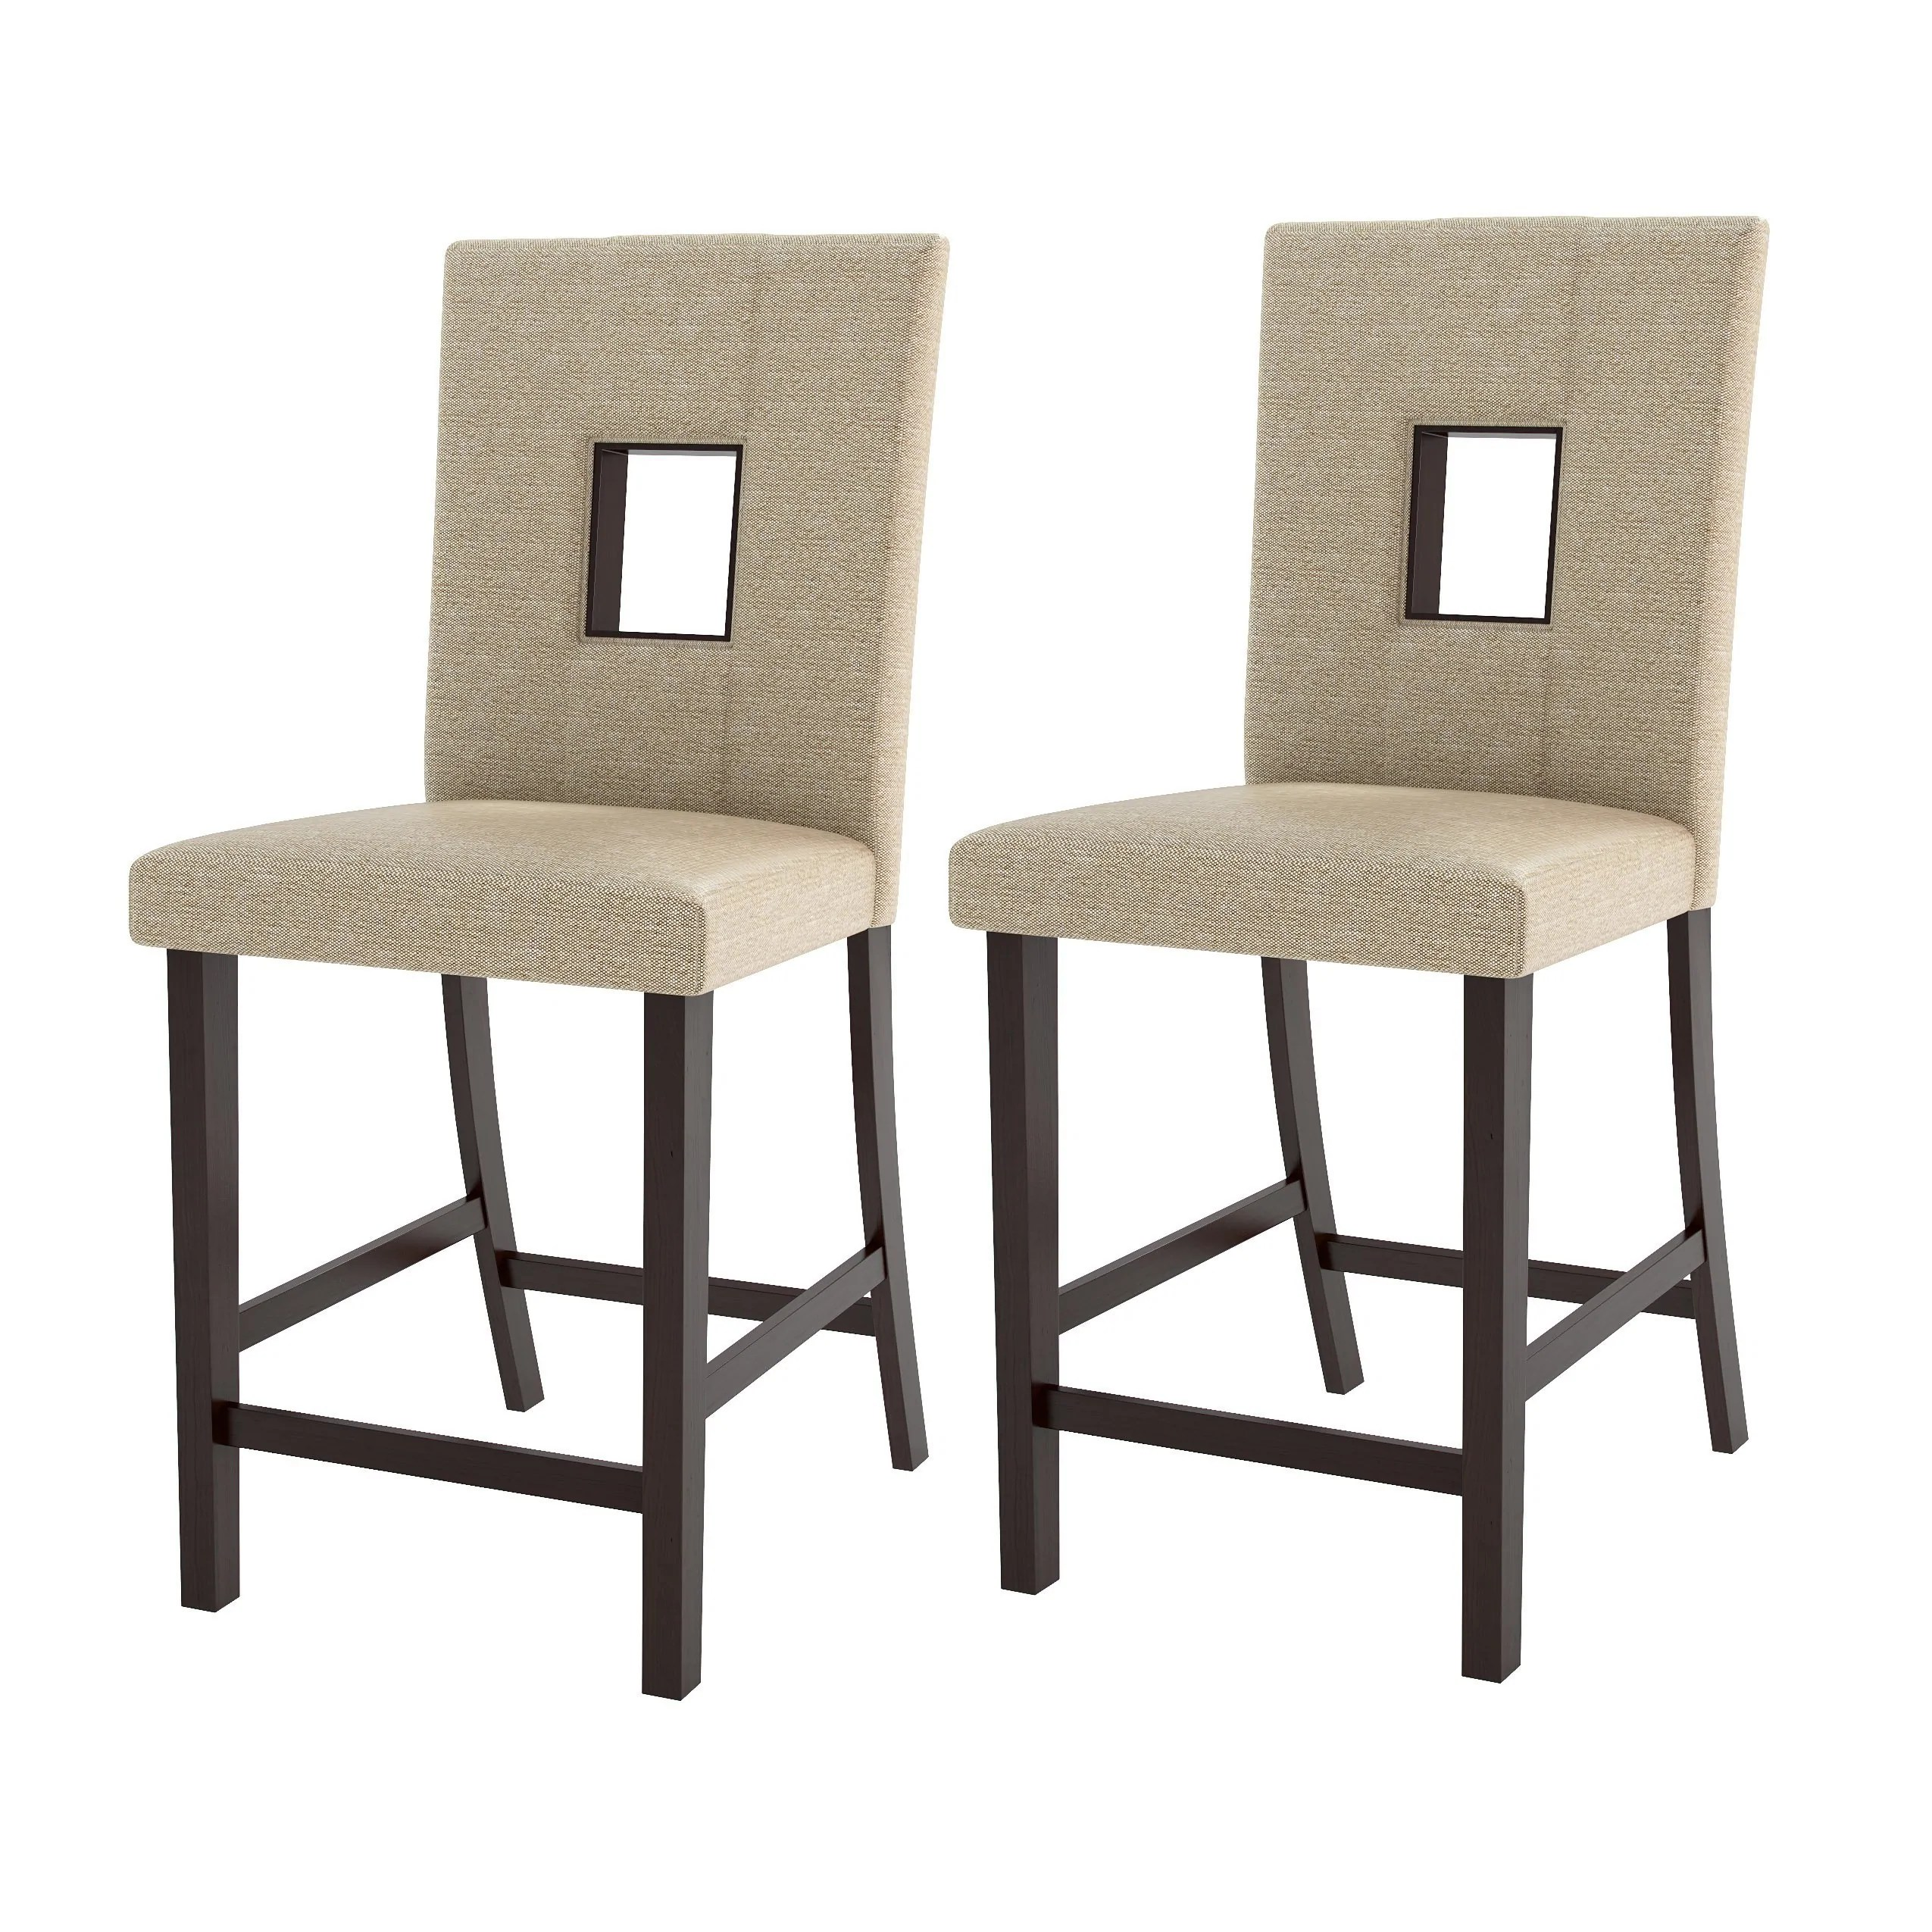 Fabric Counter Height Bar Stools Sand Fabric Counter Height Dining Chairs Set Of 2